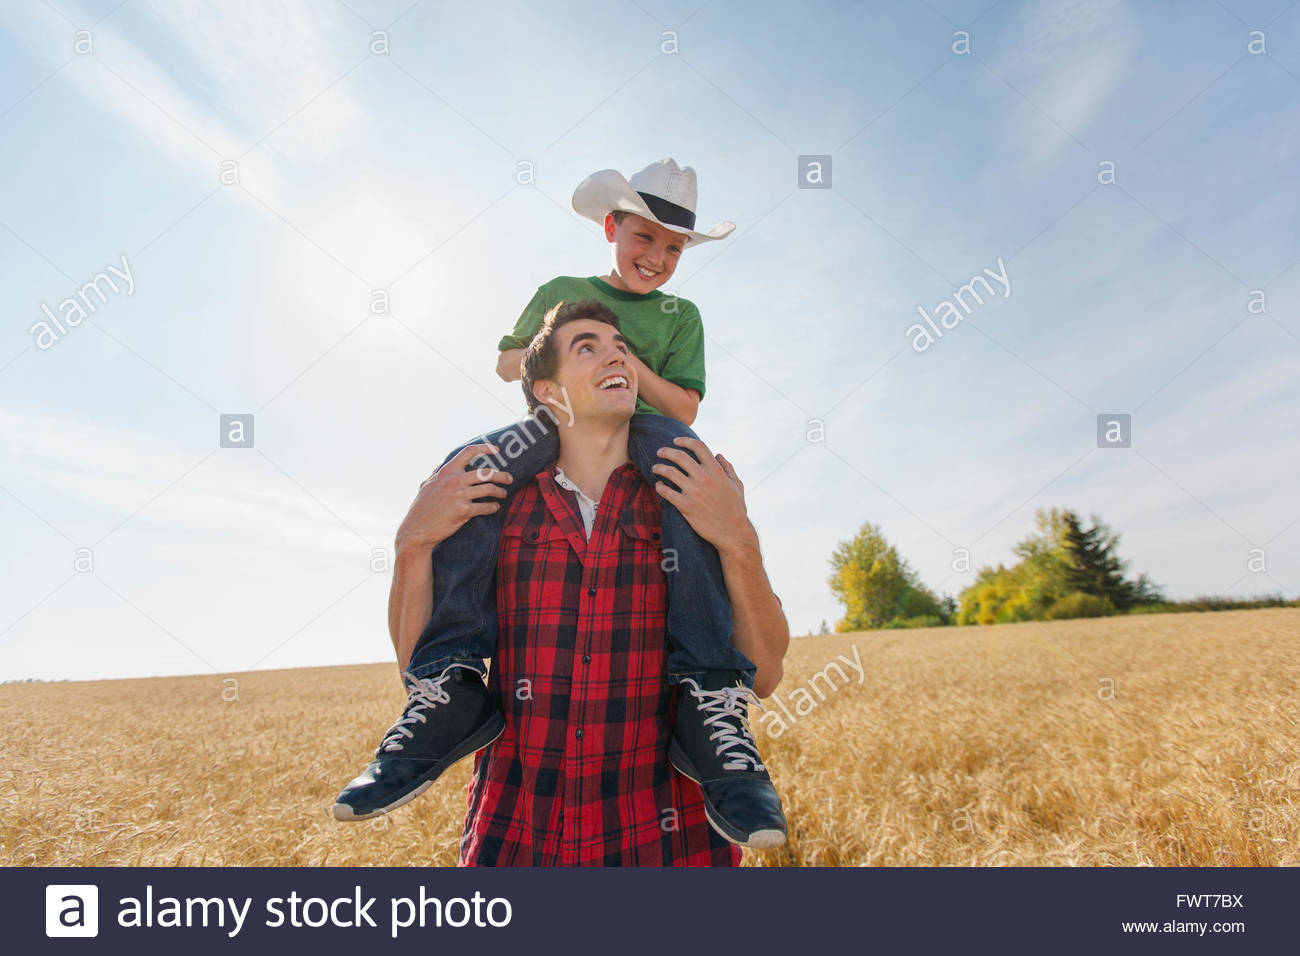 Father giving son piggy-back through wheat field. - Stock Image